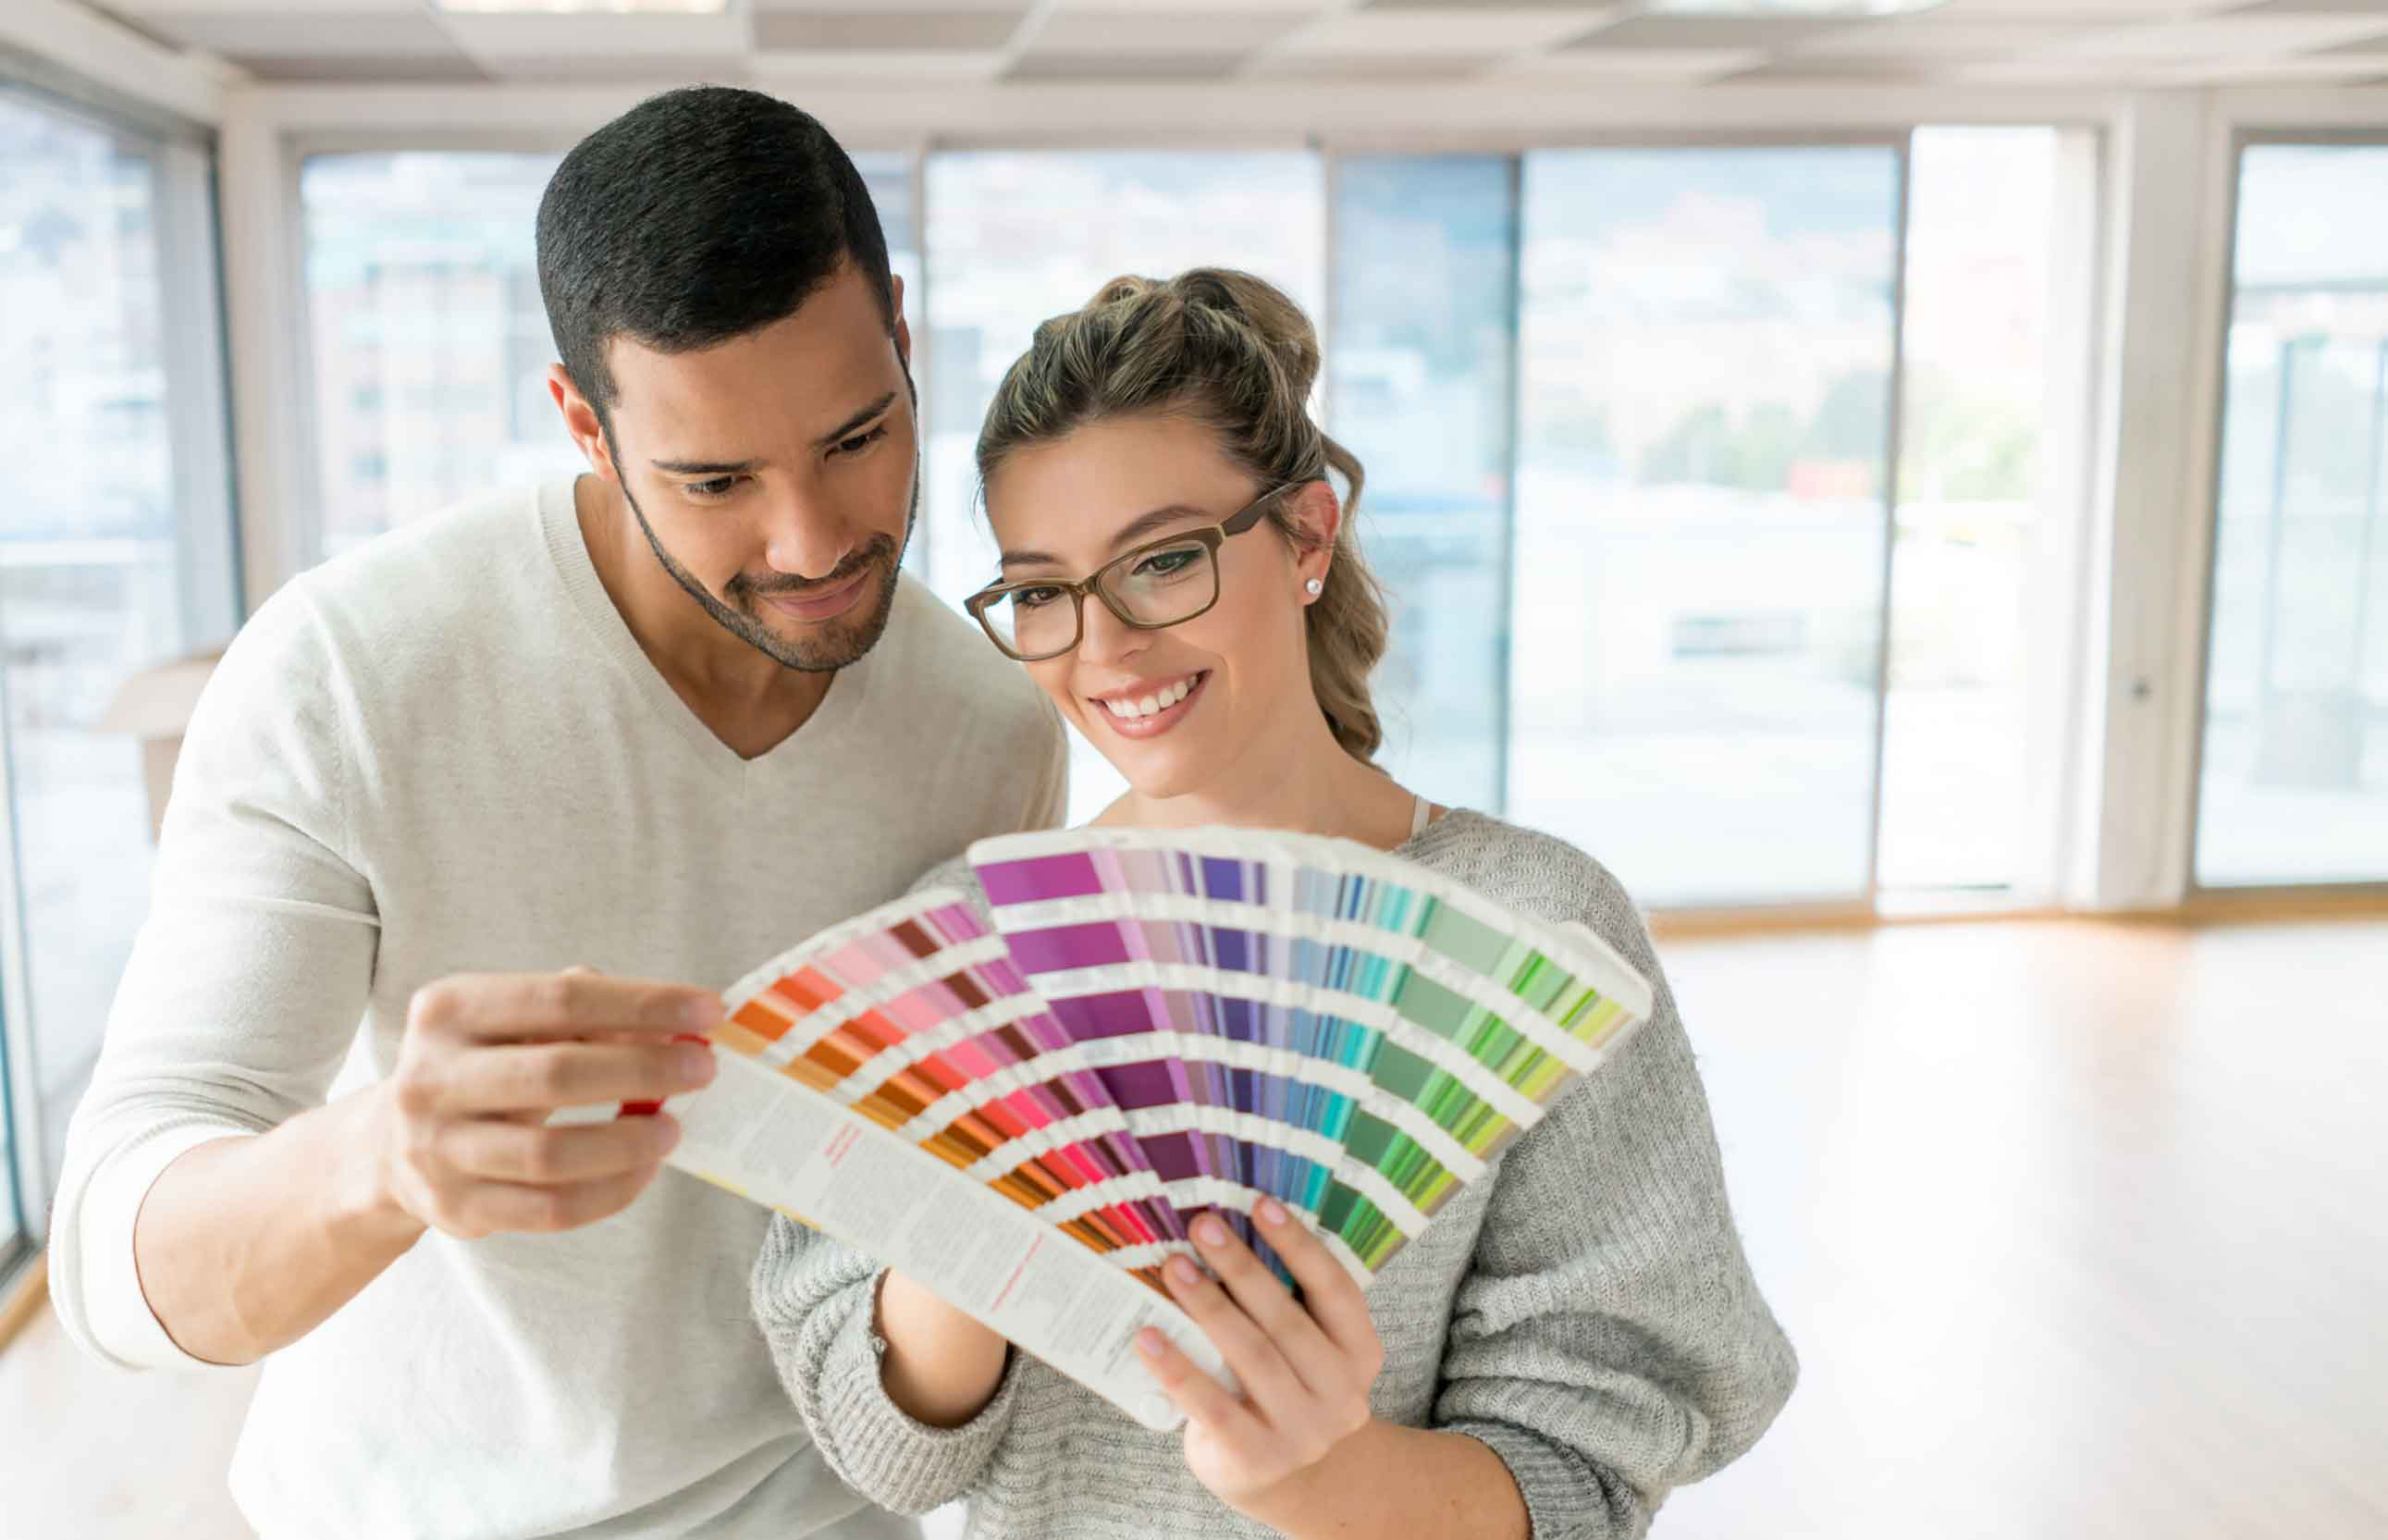 Could the color you paint the walls help your home sell for Paint colors to sell your home 2017